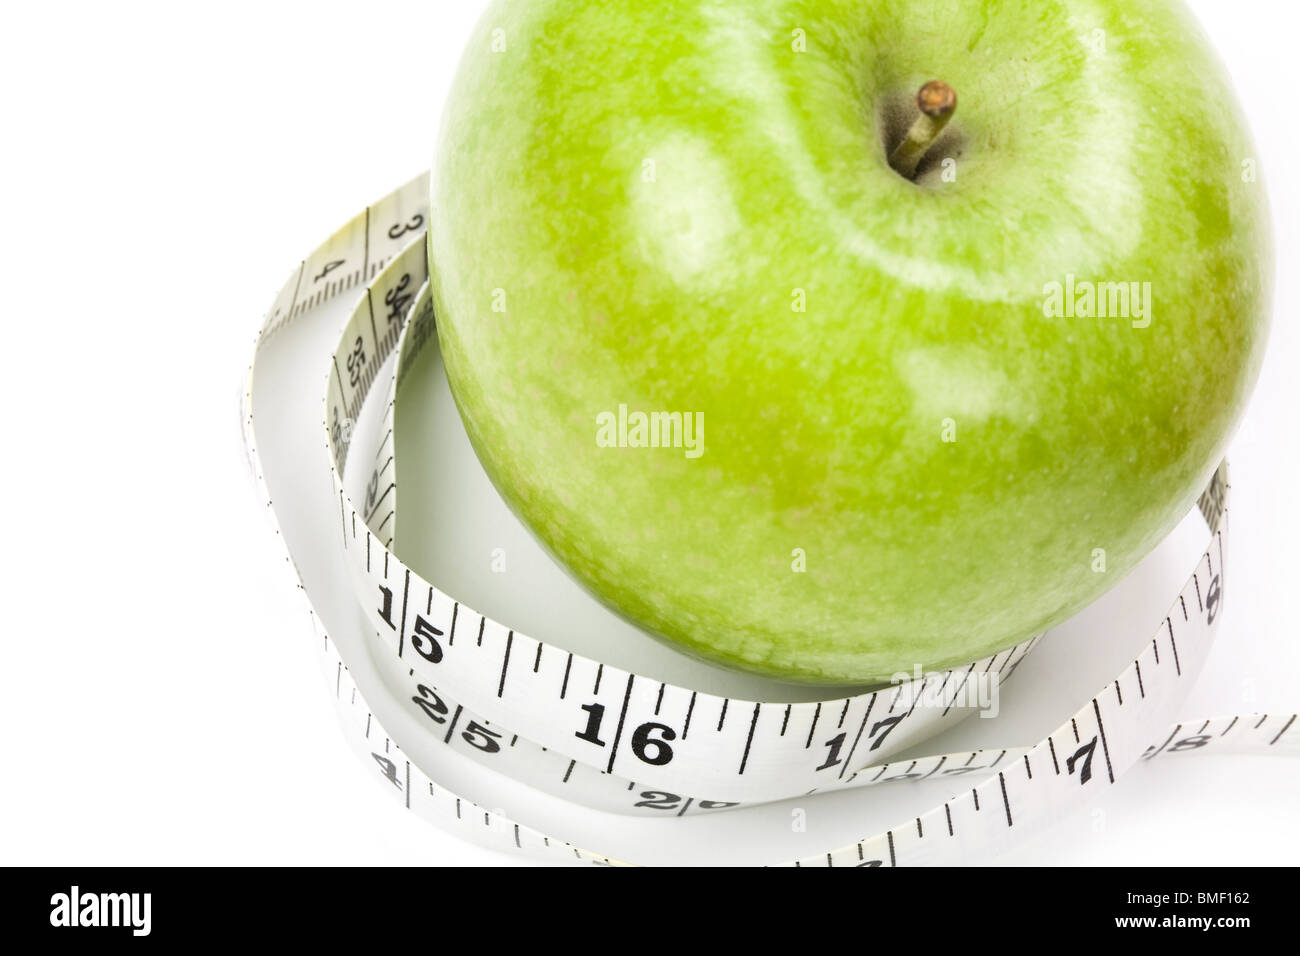 Green Apple with white background, close up shot - Stock Image